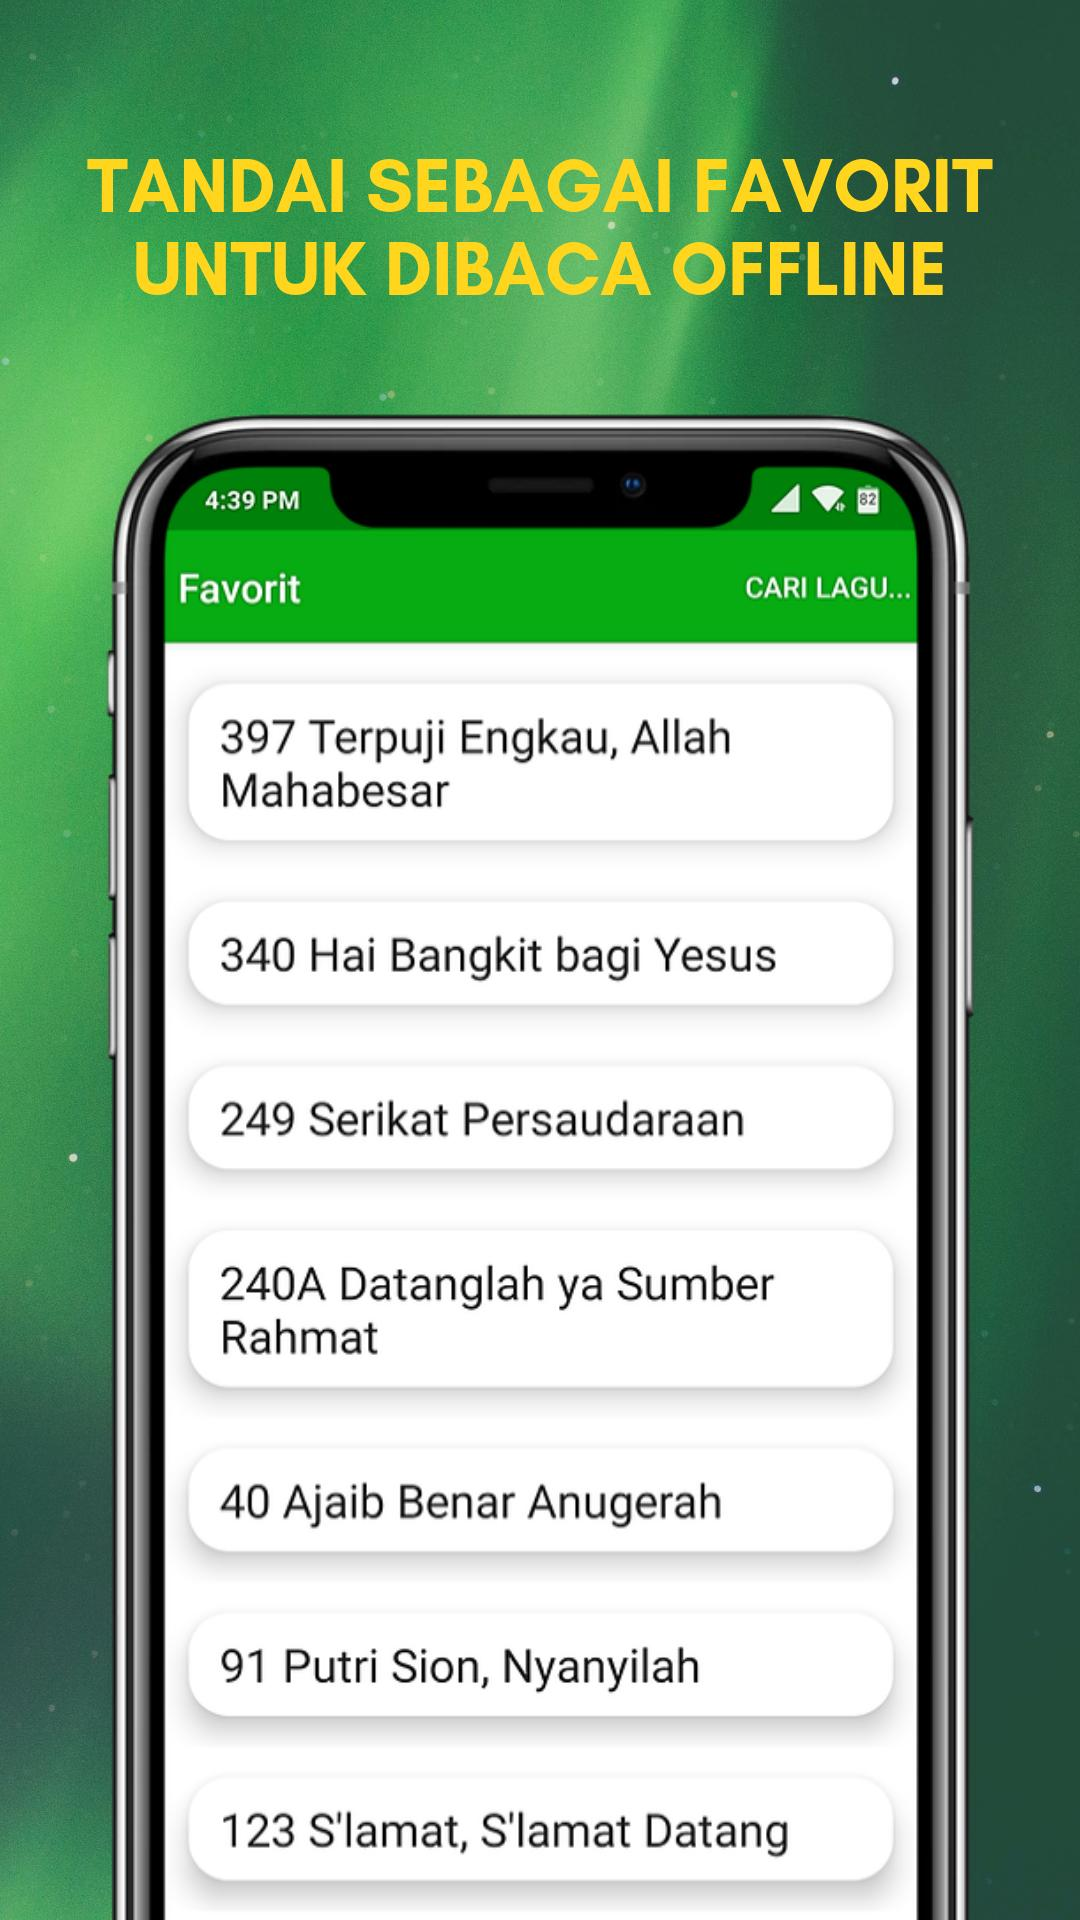 Kidung Jemaat For Android Apk Download